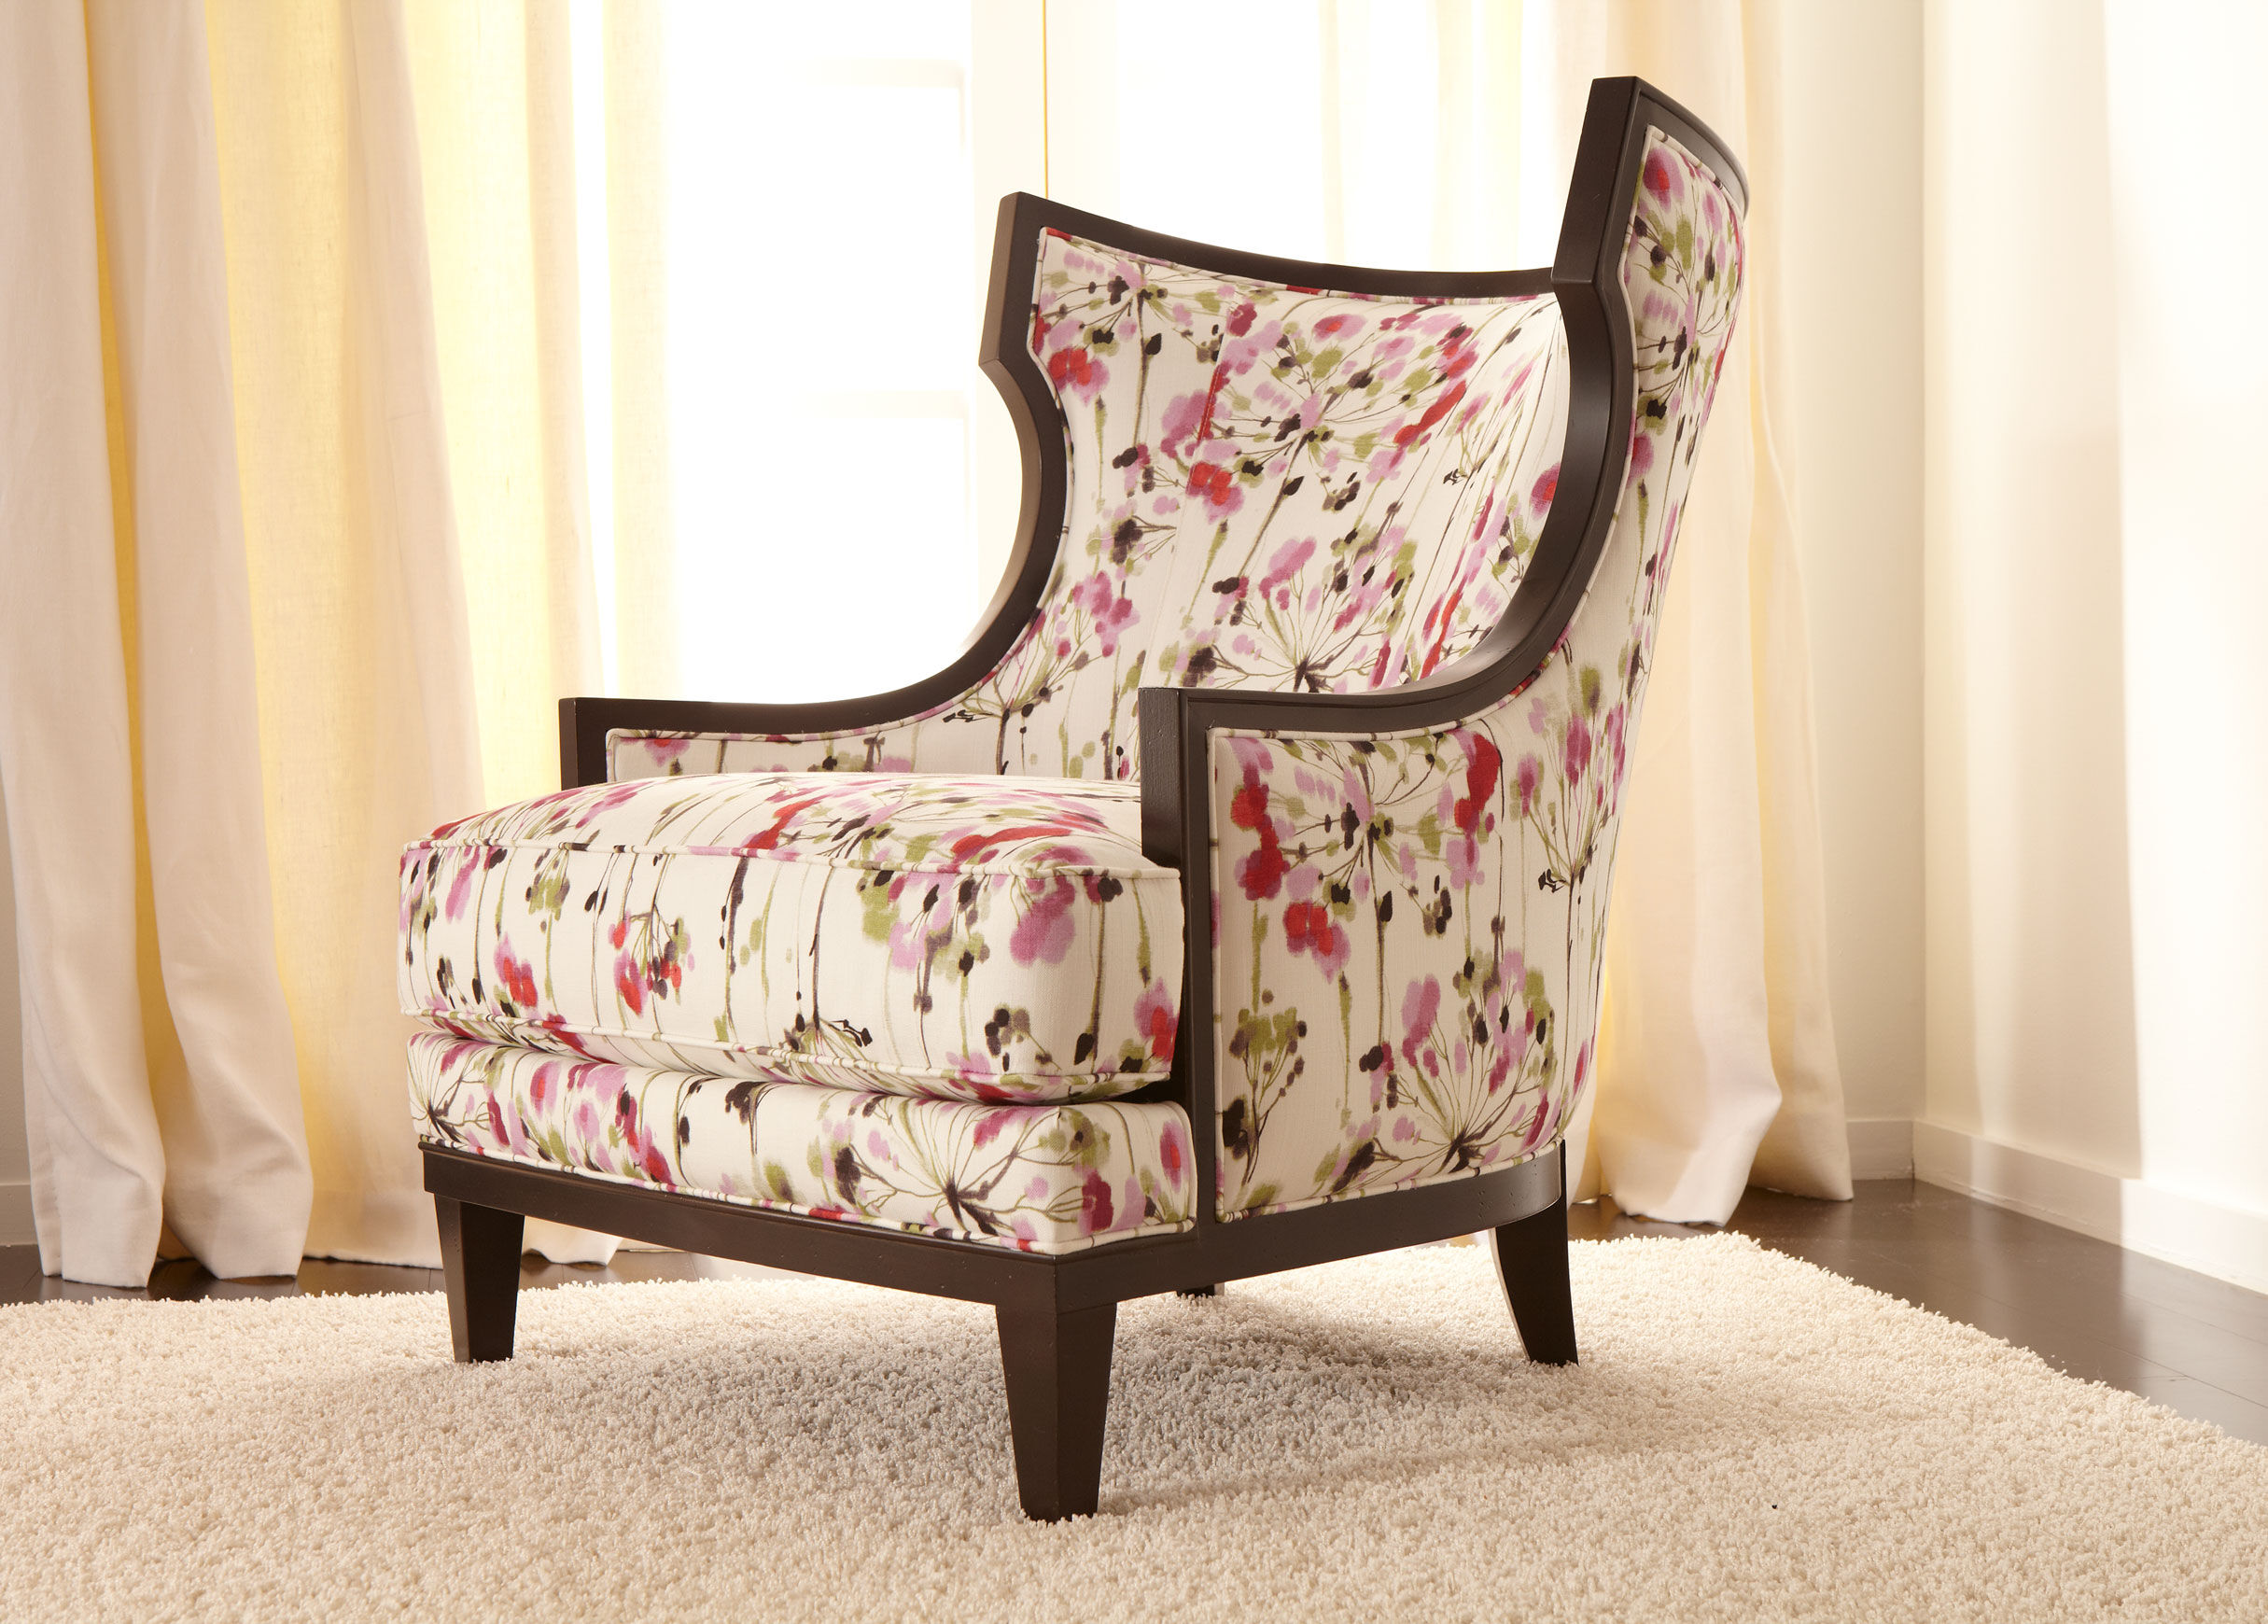 Previous Next. Ethan Allen ...